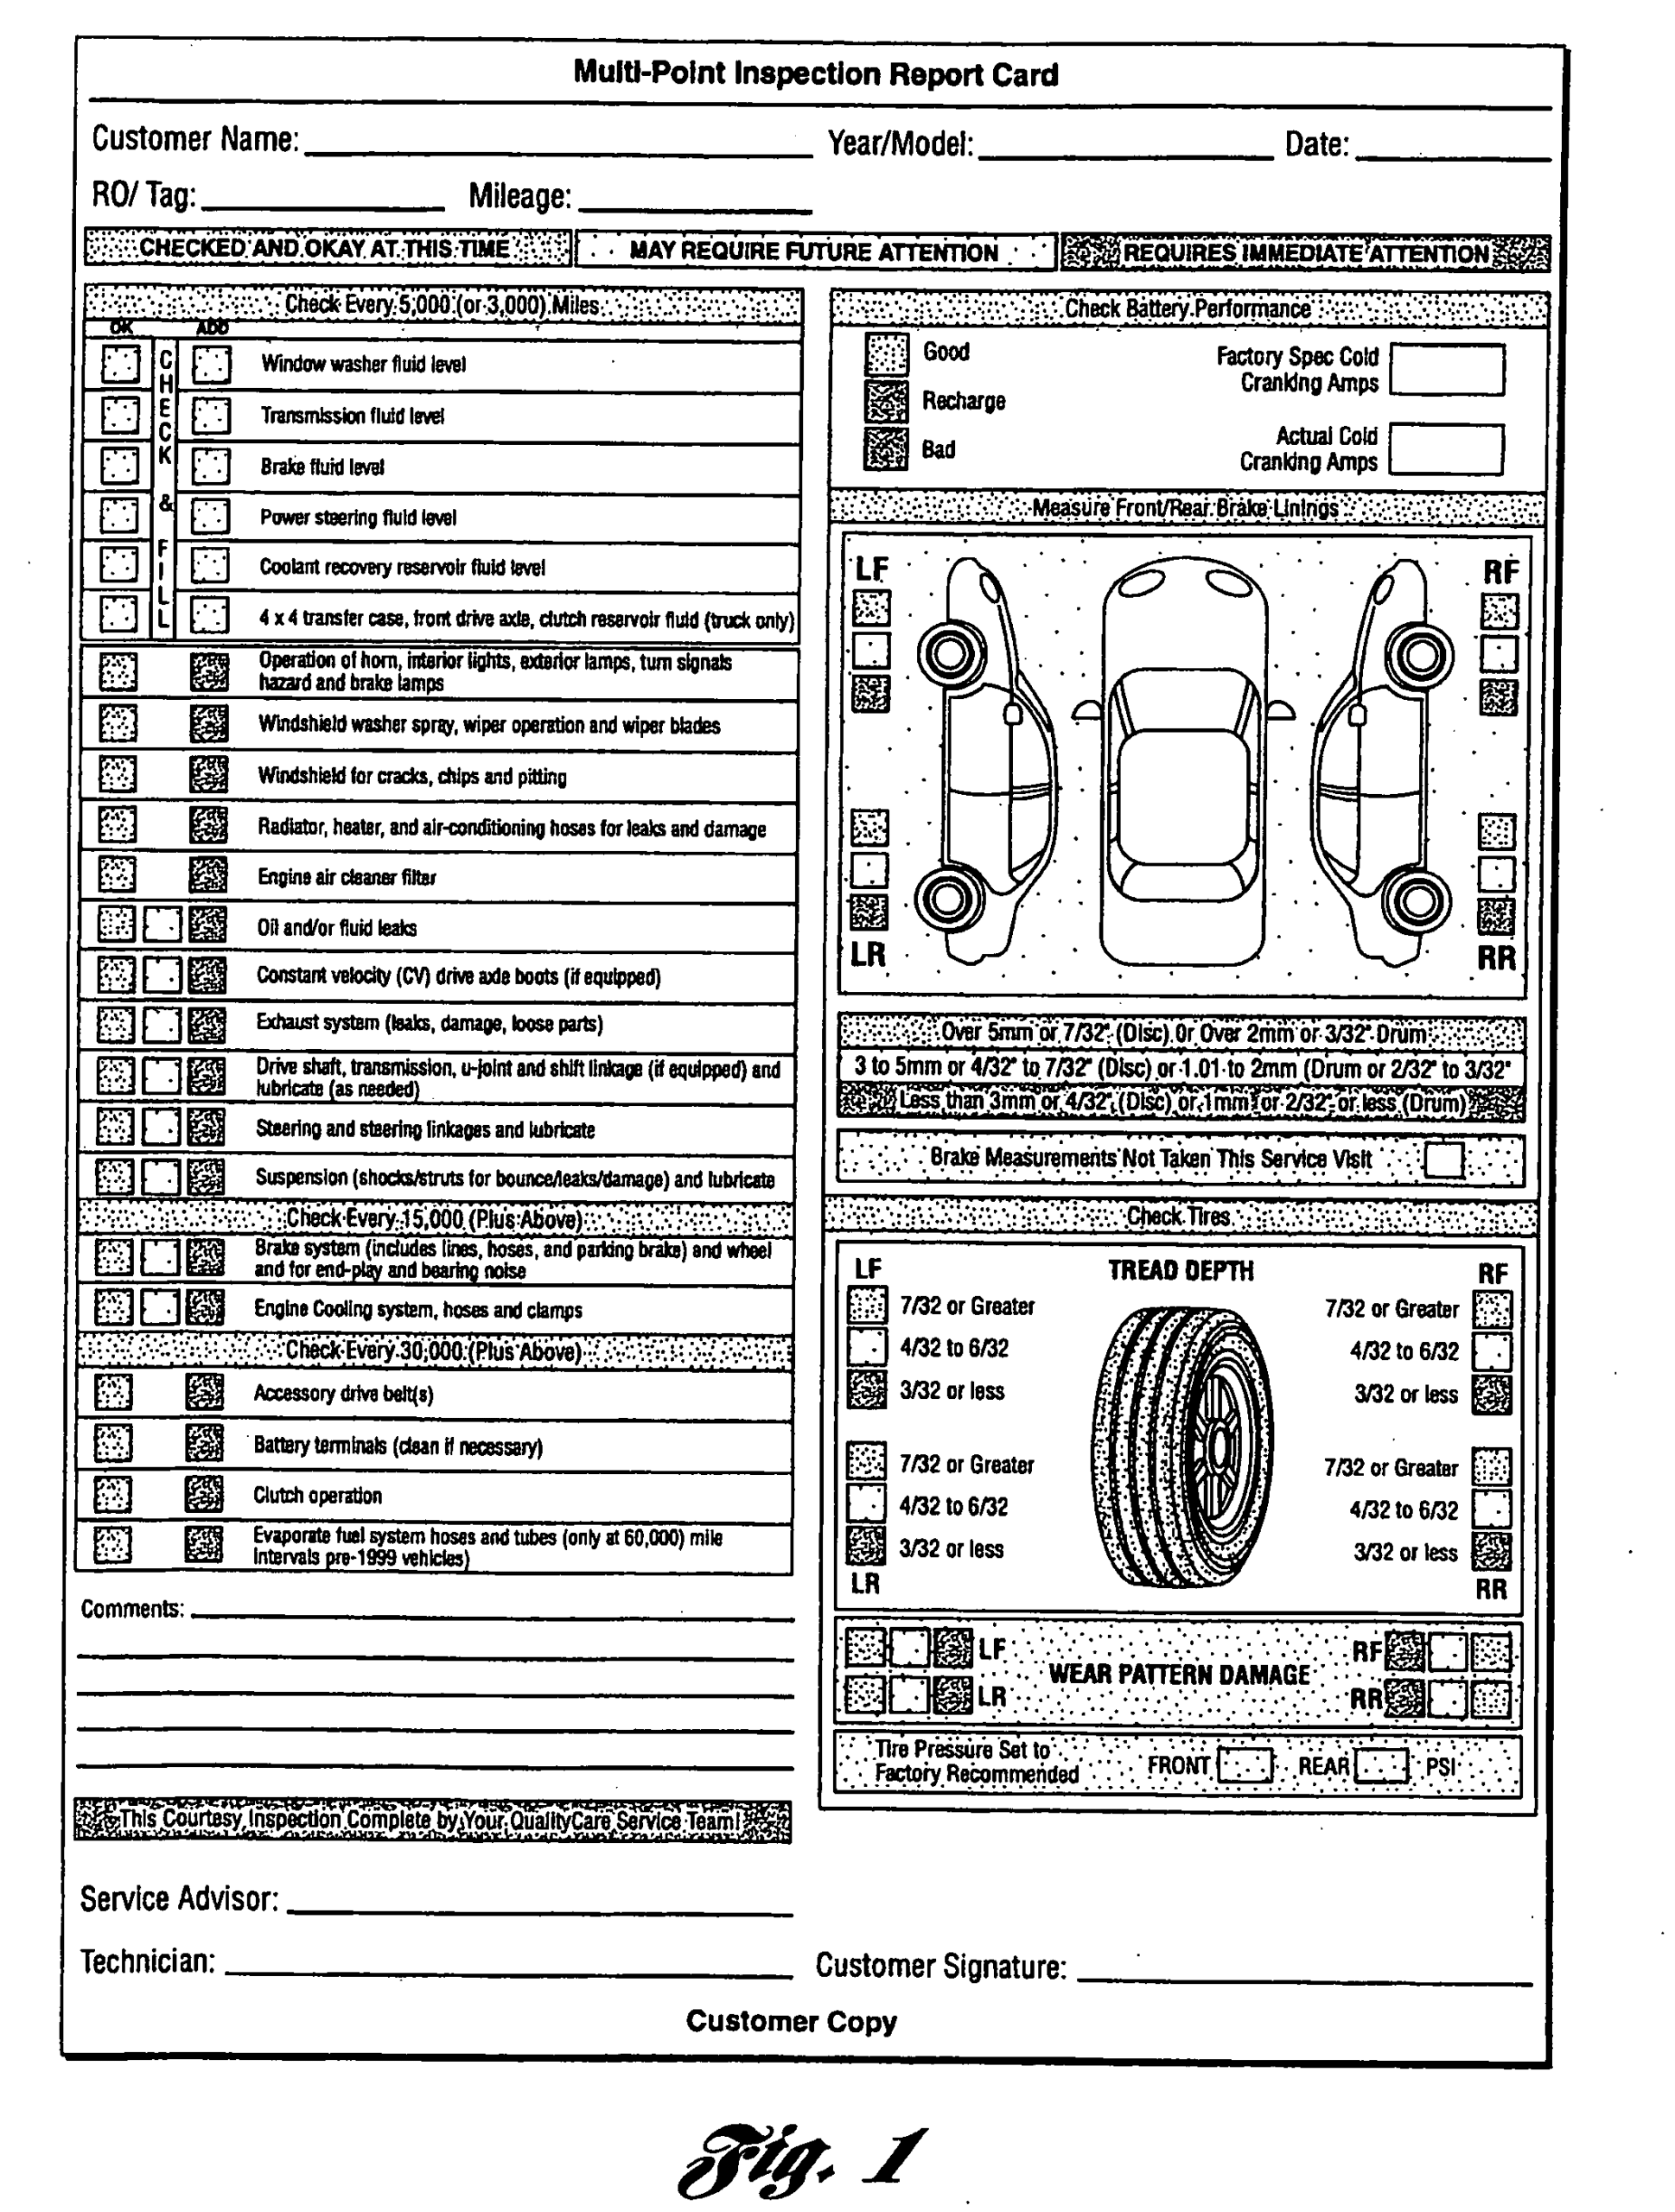 Multi Point Inspection Report Card As Recommendedford Throughout Vehicle Inspection Report Template